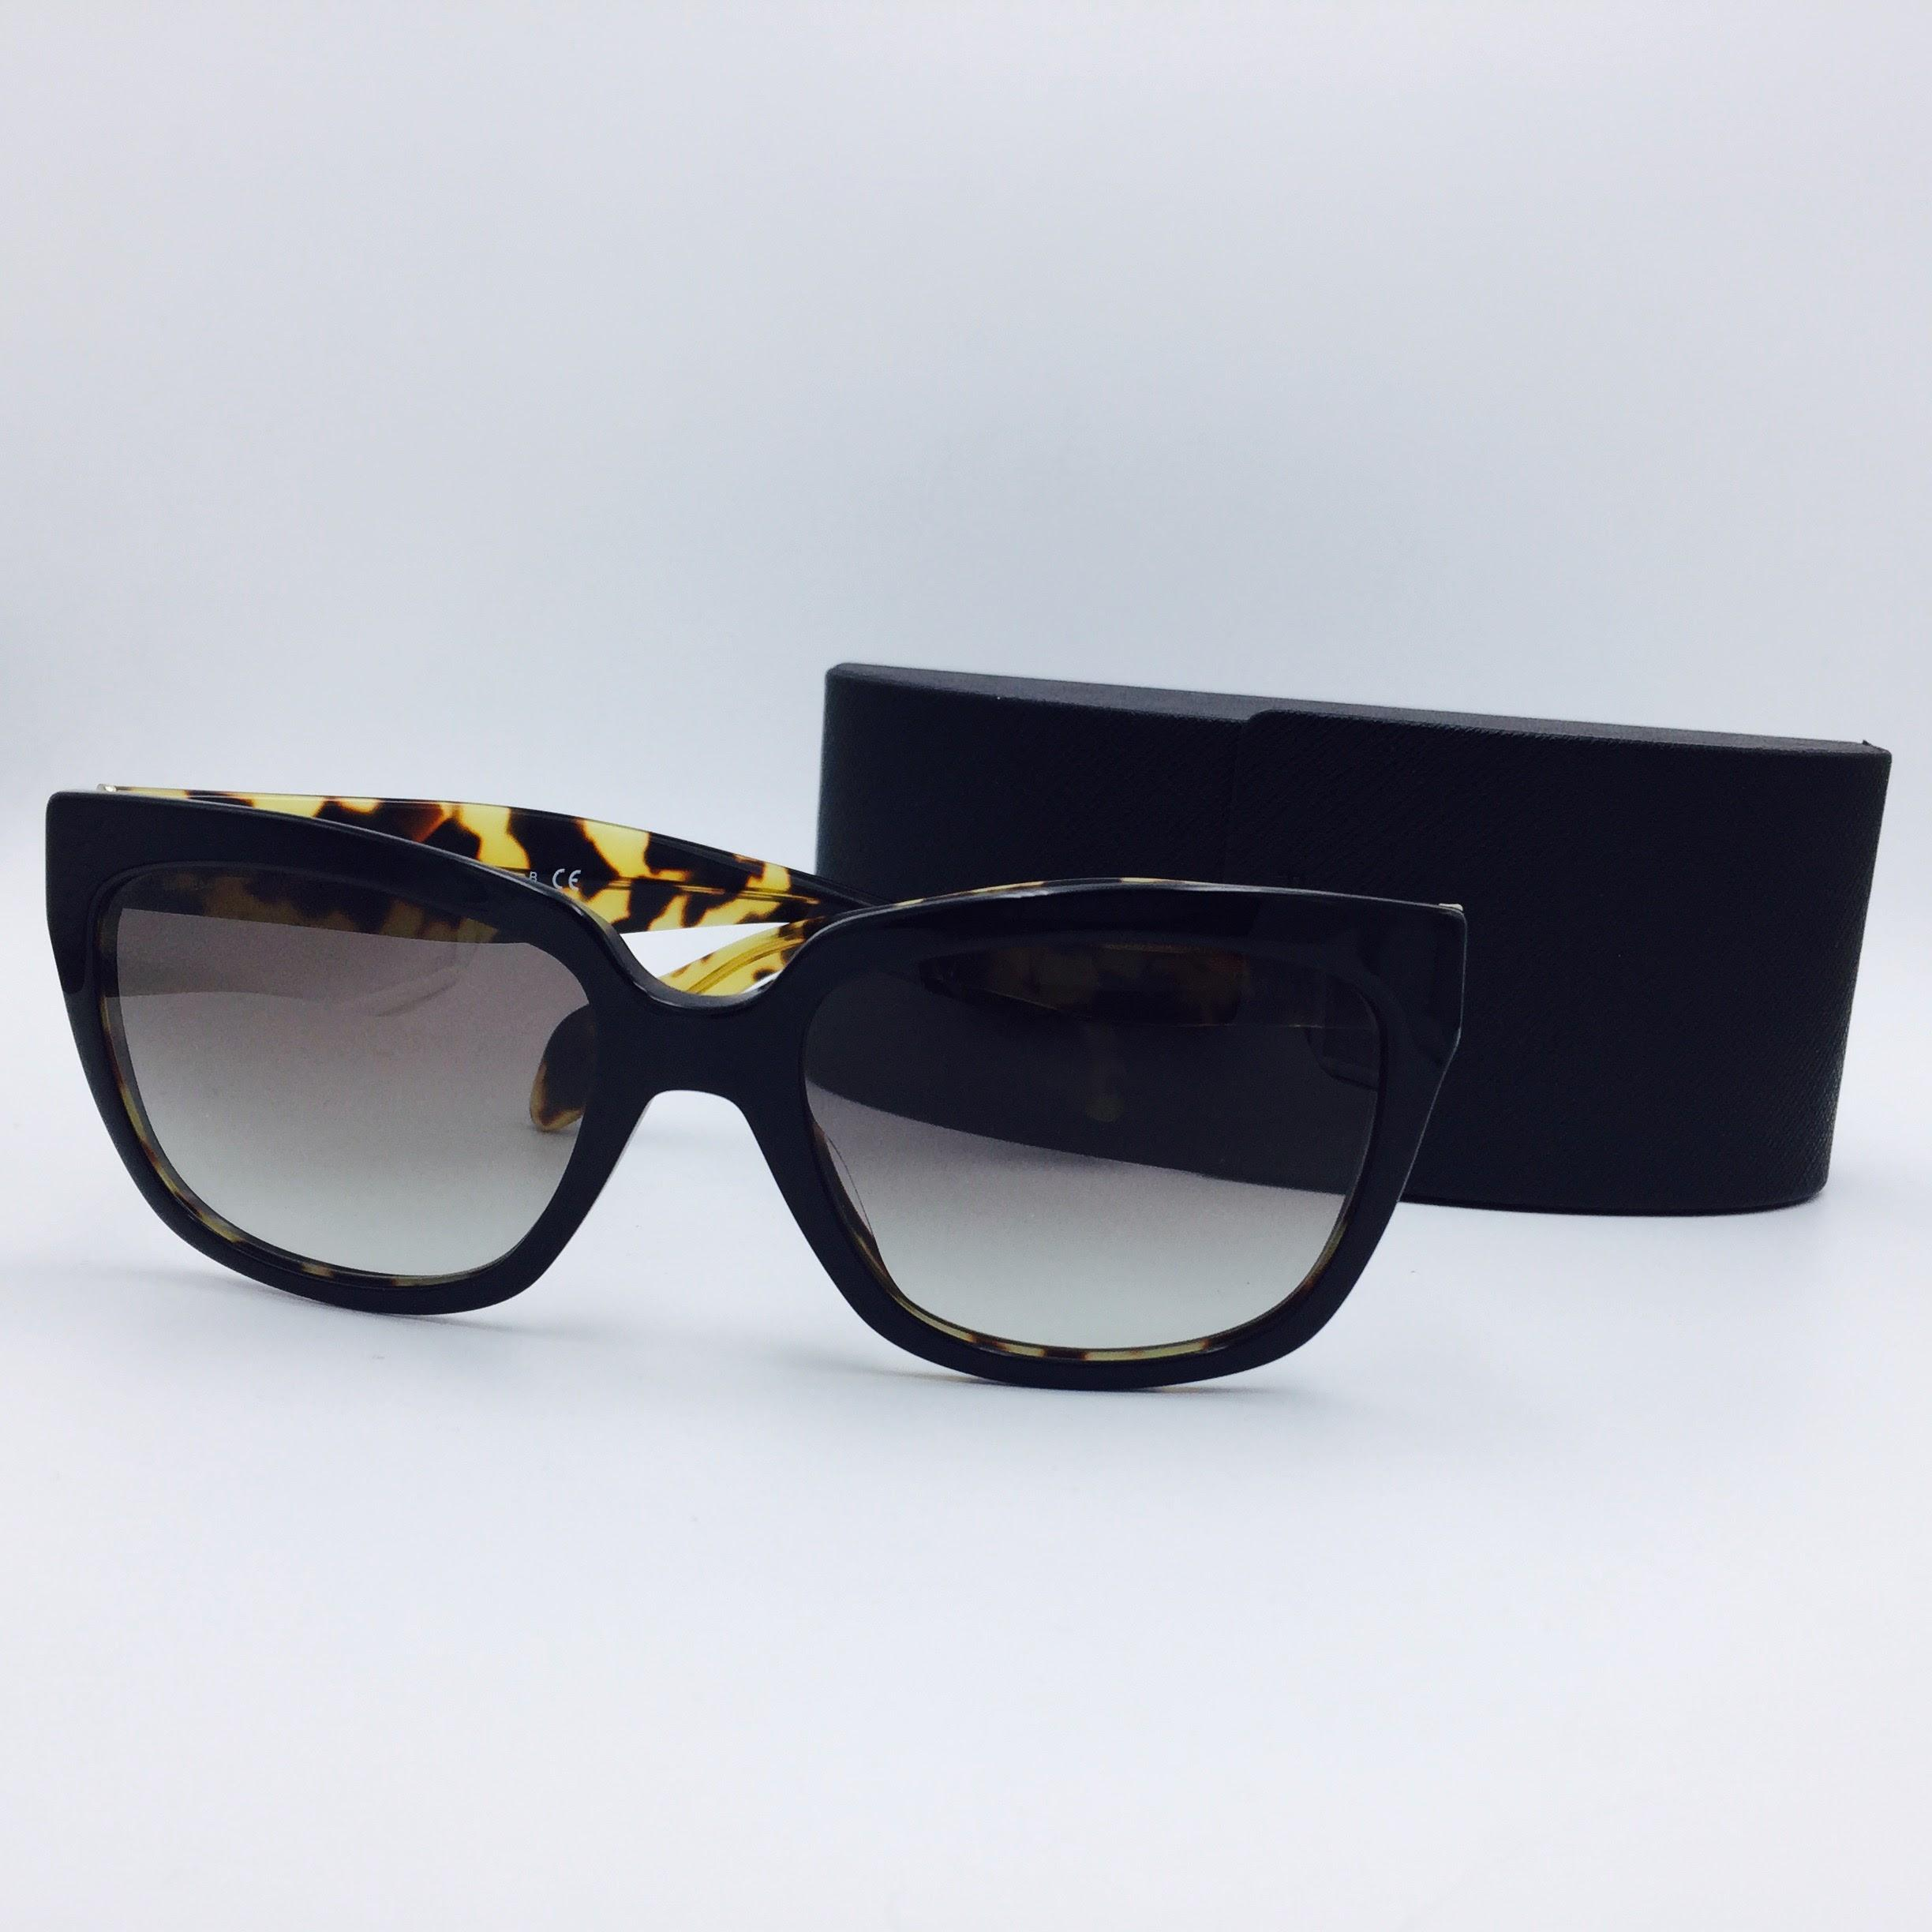 c57b3f38cbec ... new zealand prada black tortoise square and spr 07p a 56 sunglasses  tradesy f2dfe 45e34